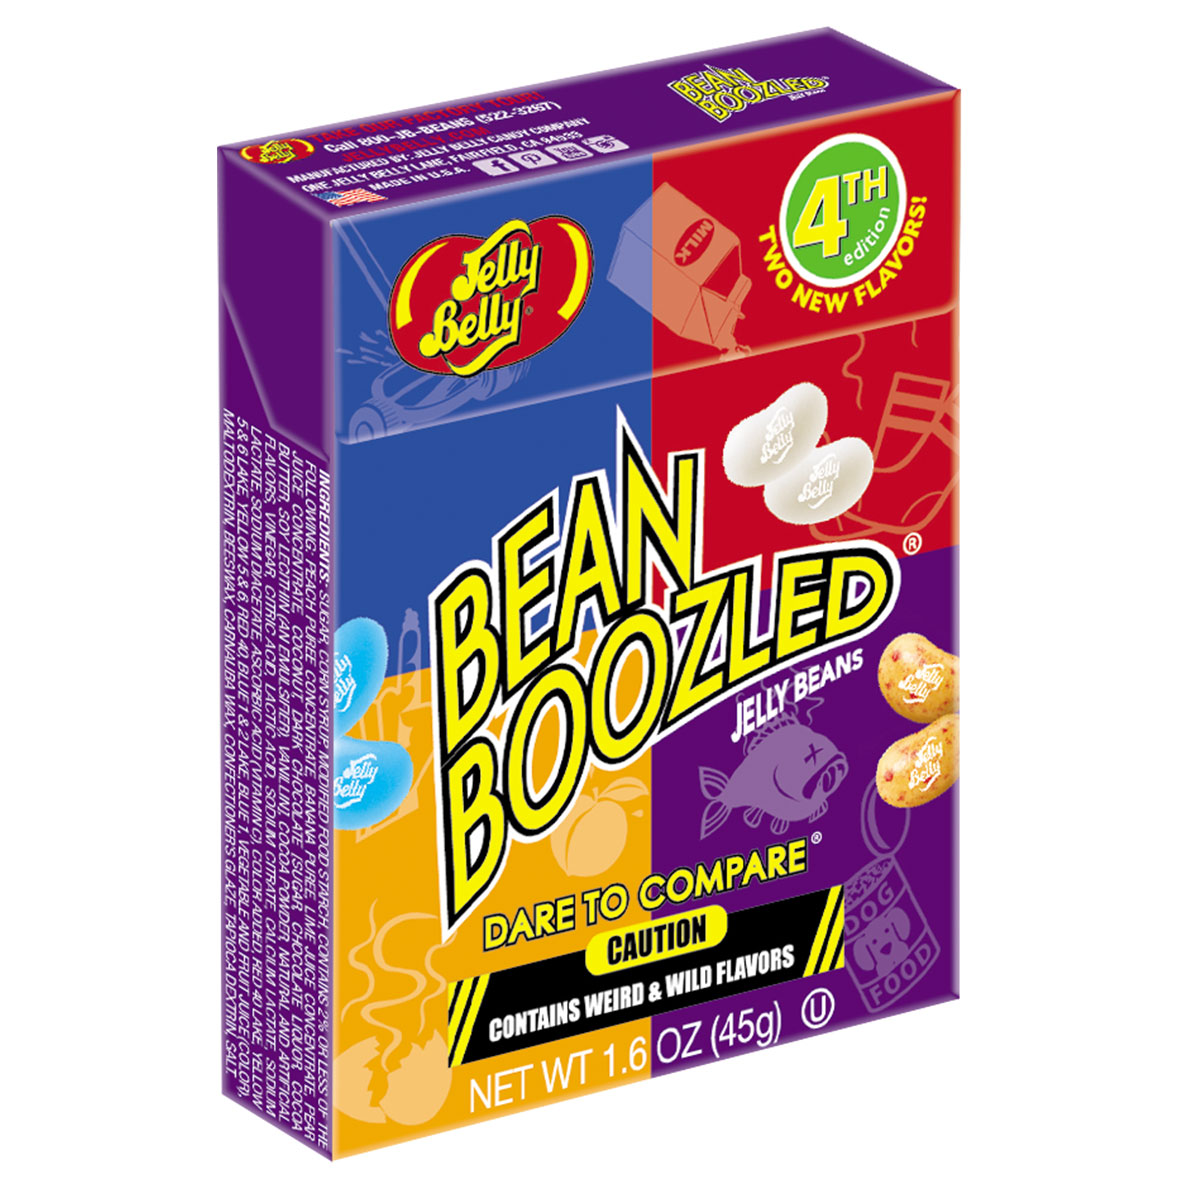 Jelly Belly Bean 1.6oz Boozled Jelly Beans, Forth Edition